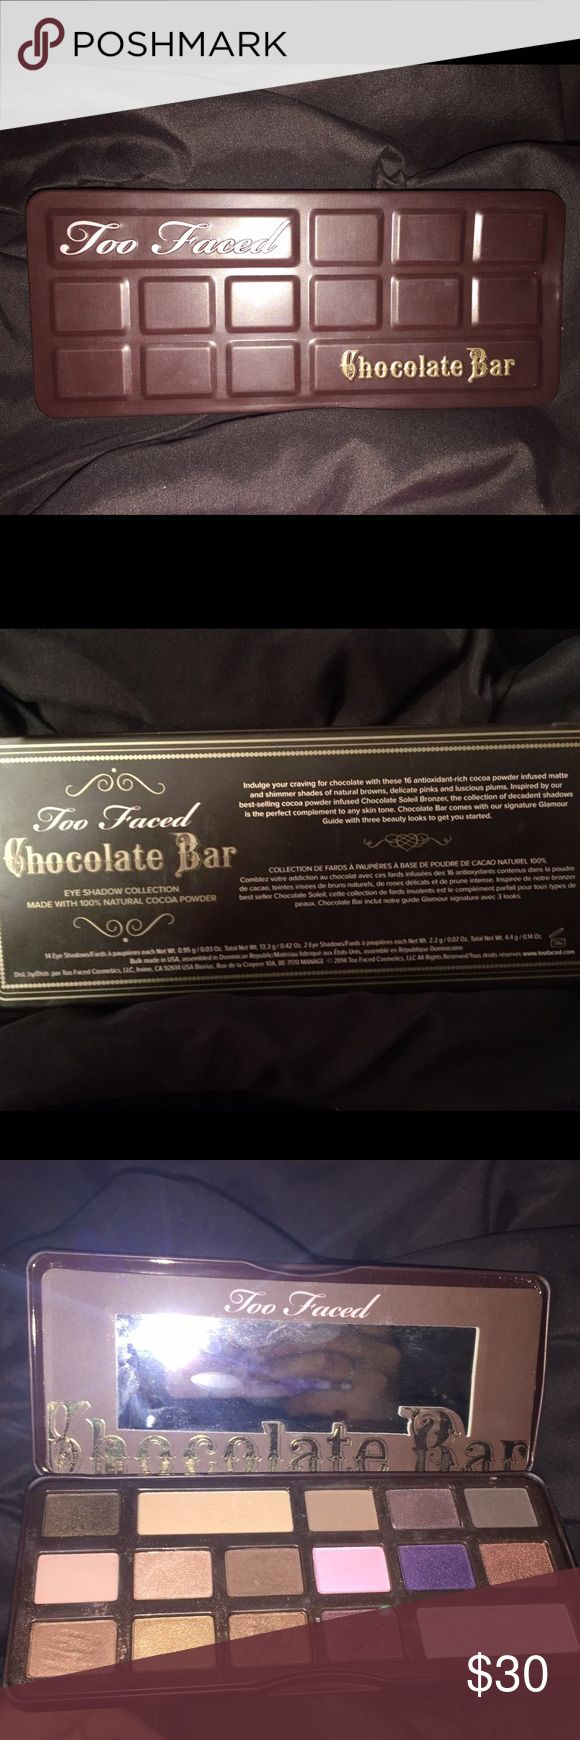 Best 10+ Chocolate bar names ideas on Pinterest | Cocoa futures ...